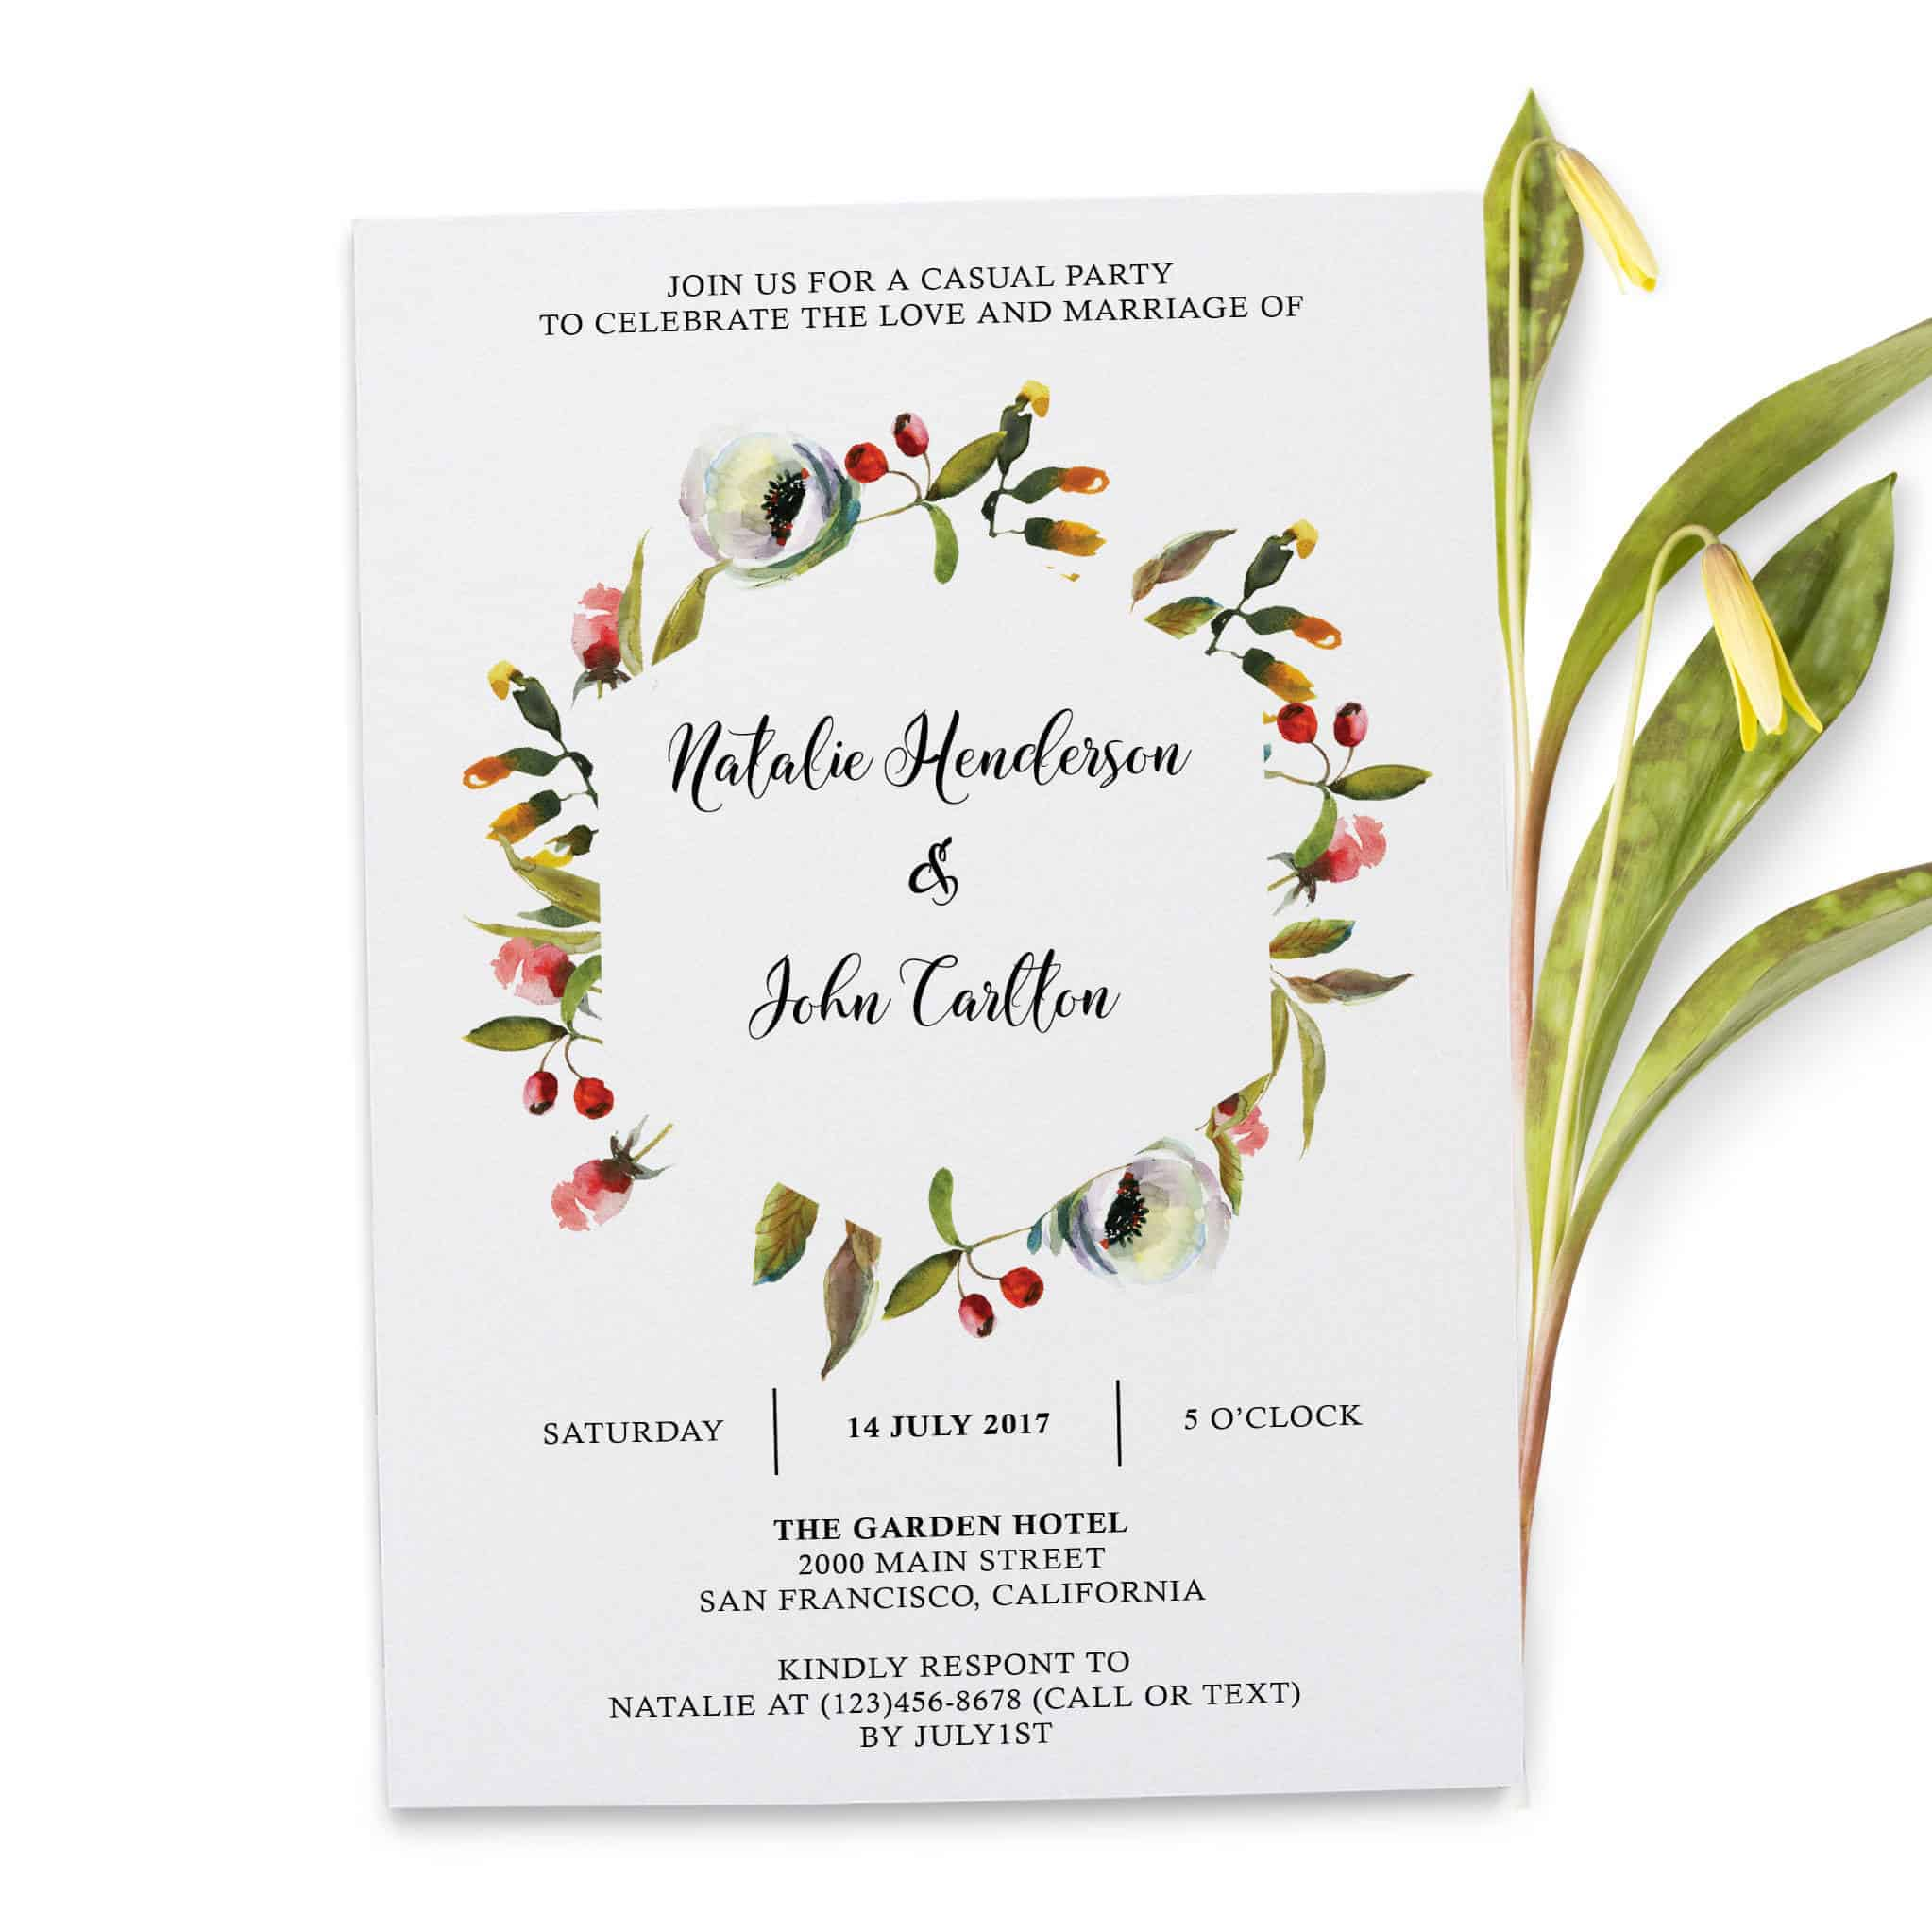 Floral Garland , Simple Elopement Invitation Cards, Light Wedding Elopement Card, Marriage Announcement Cards